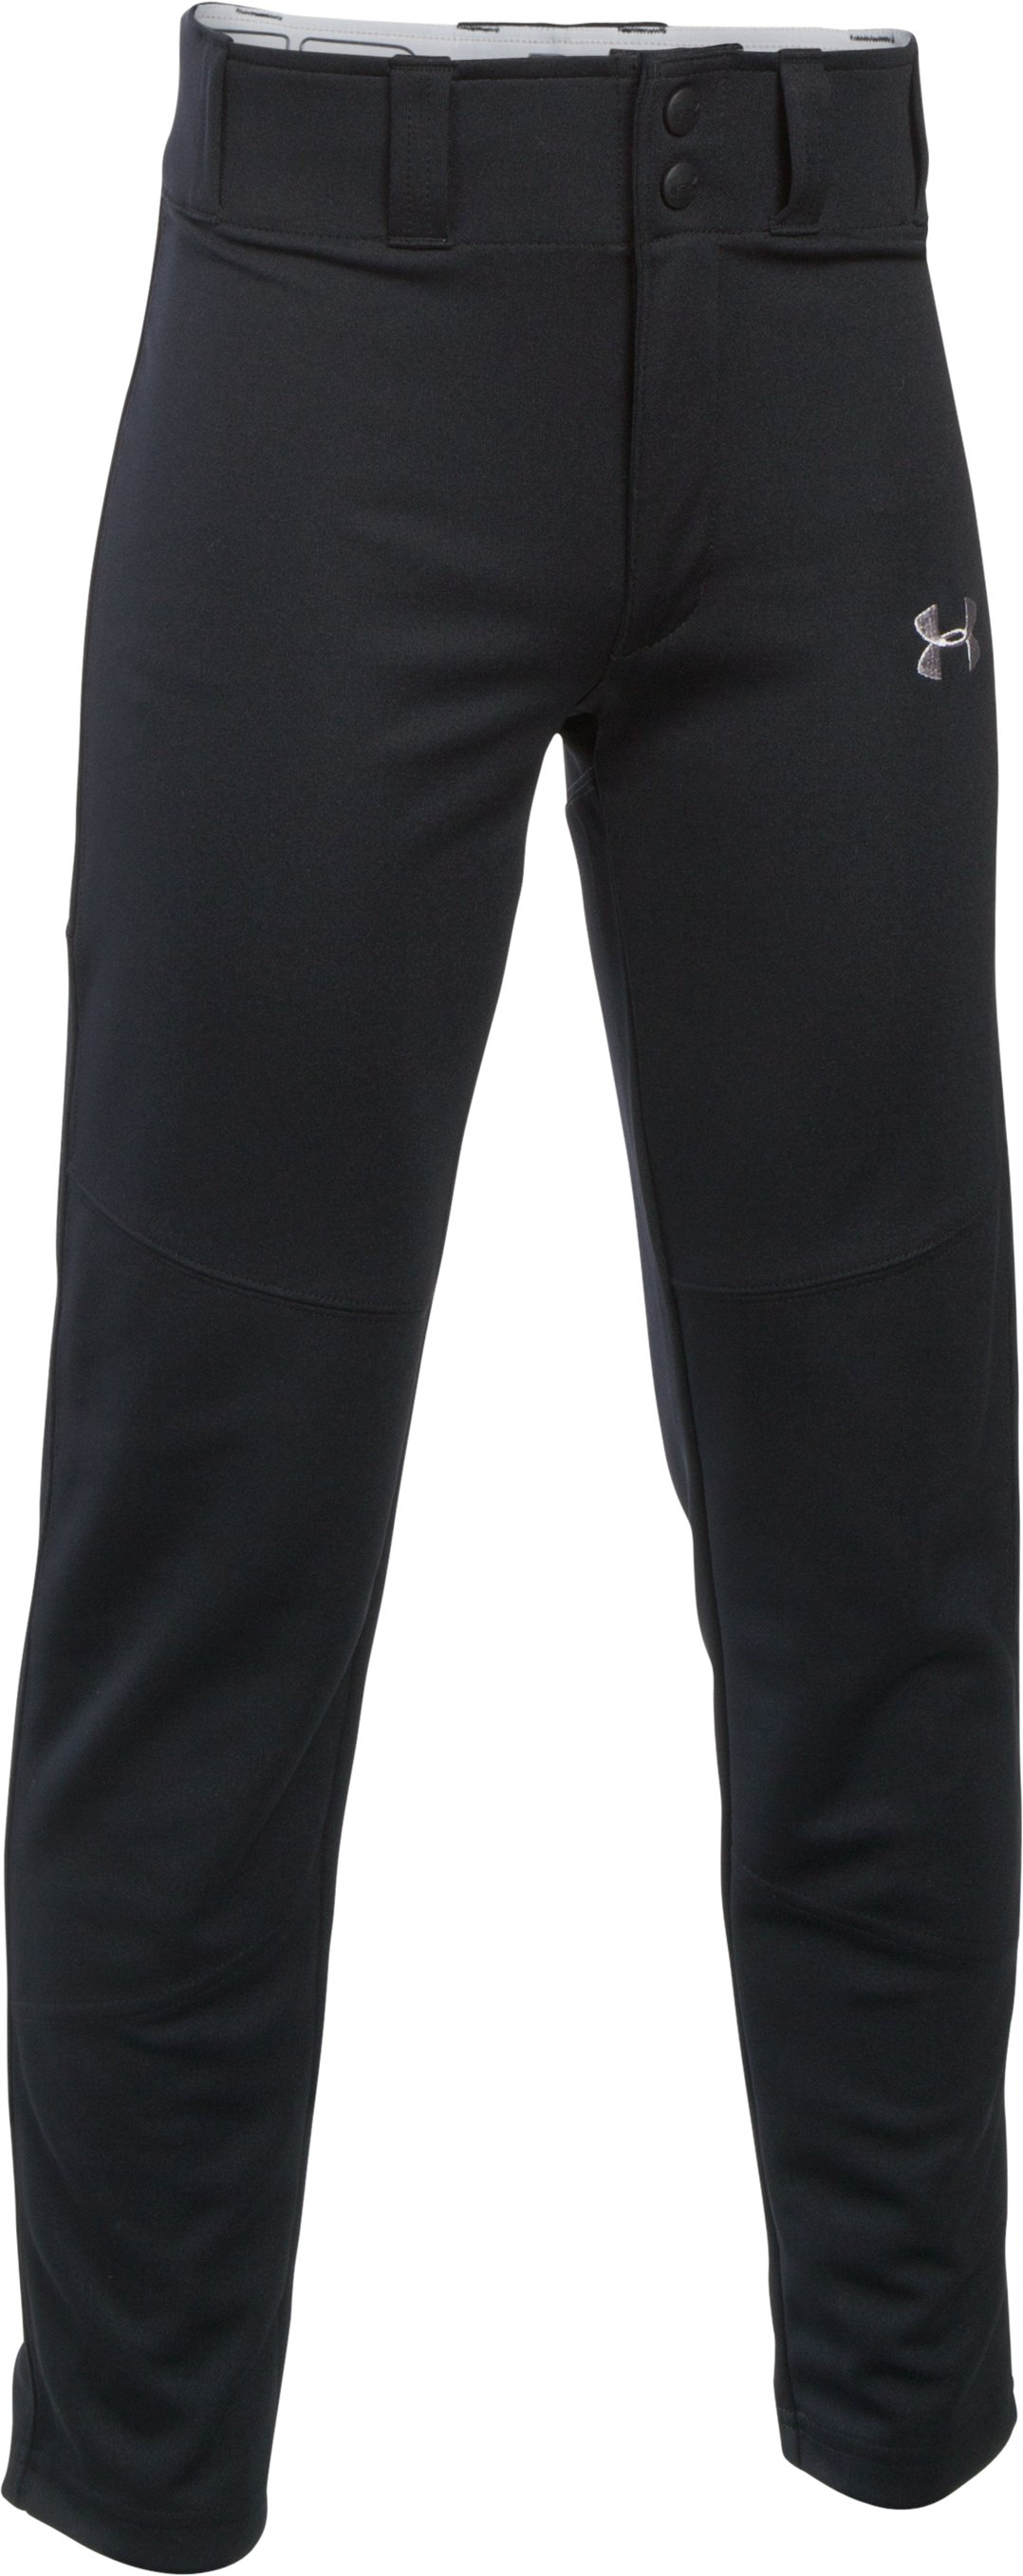 Boys' UA Lead Off Baseball Pants, Black